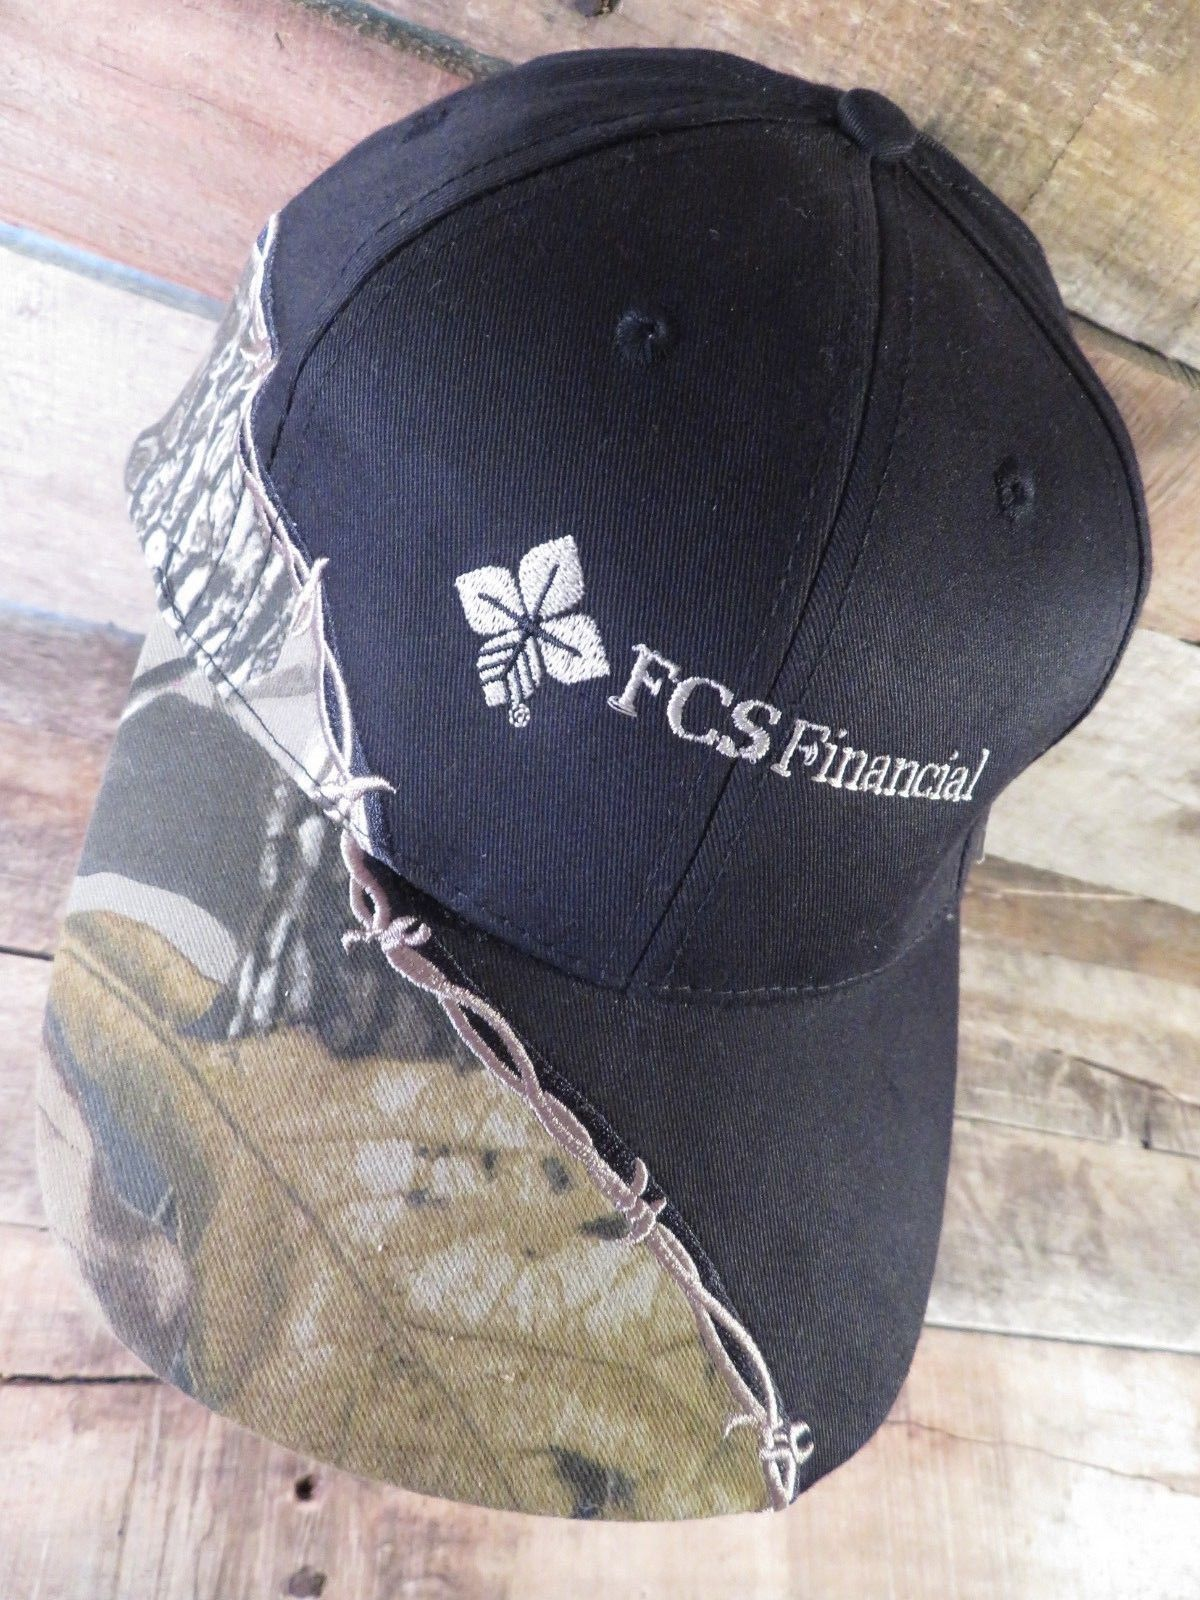 FCS Financial Realtree Camouflage Barbed Wire Adjustable Adult Cap Hat